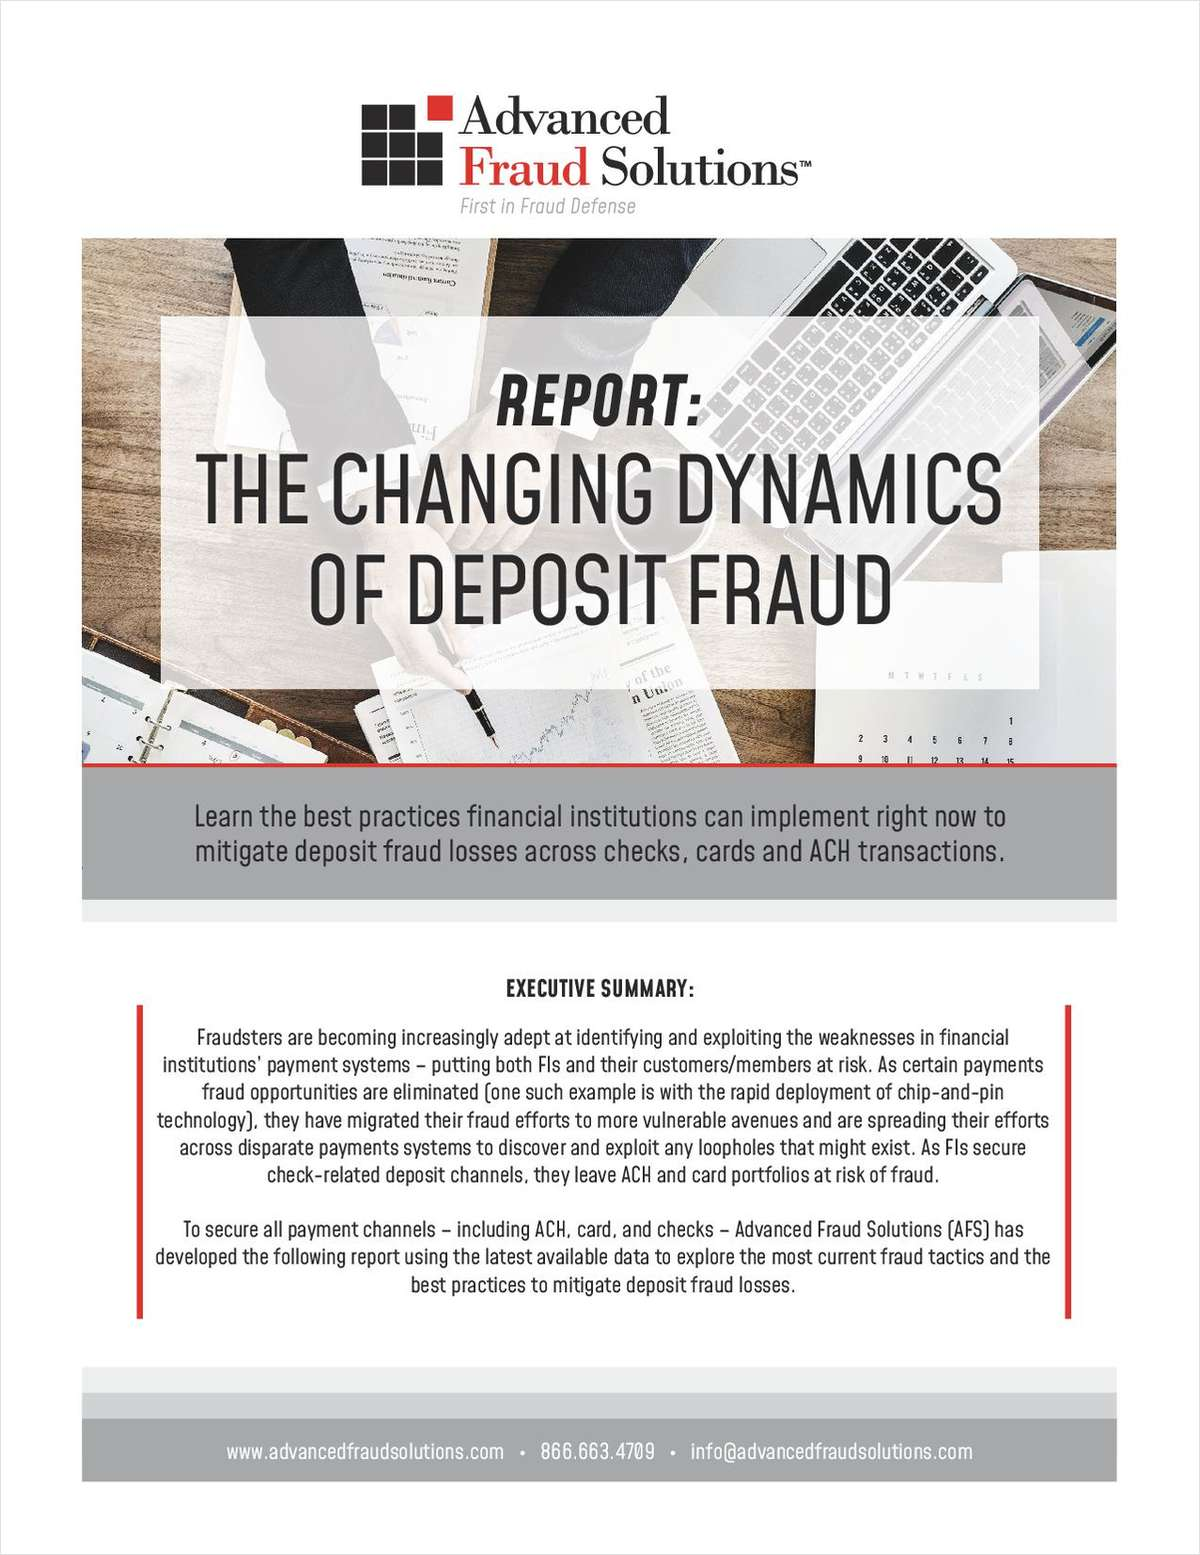 The Changing Dynamics of Deposit Fraud